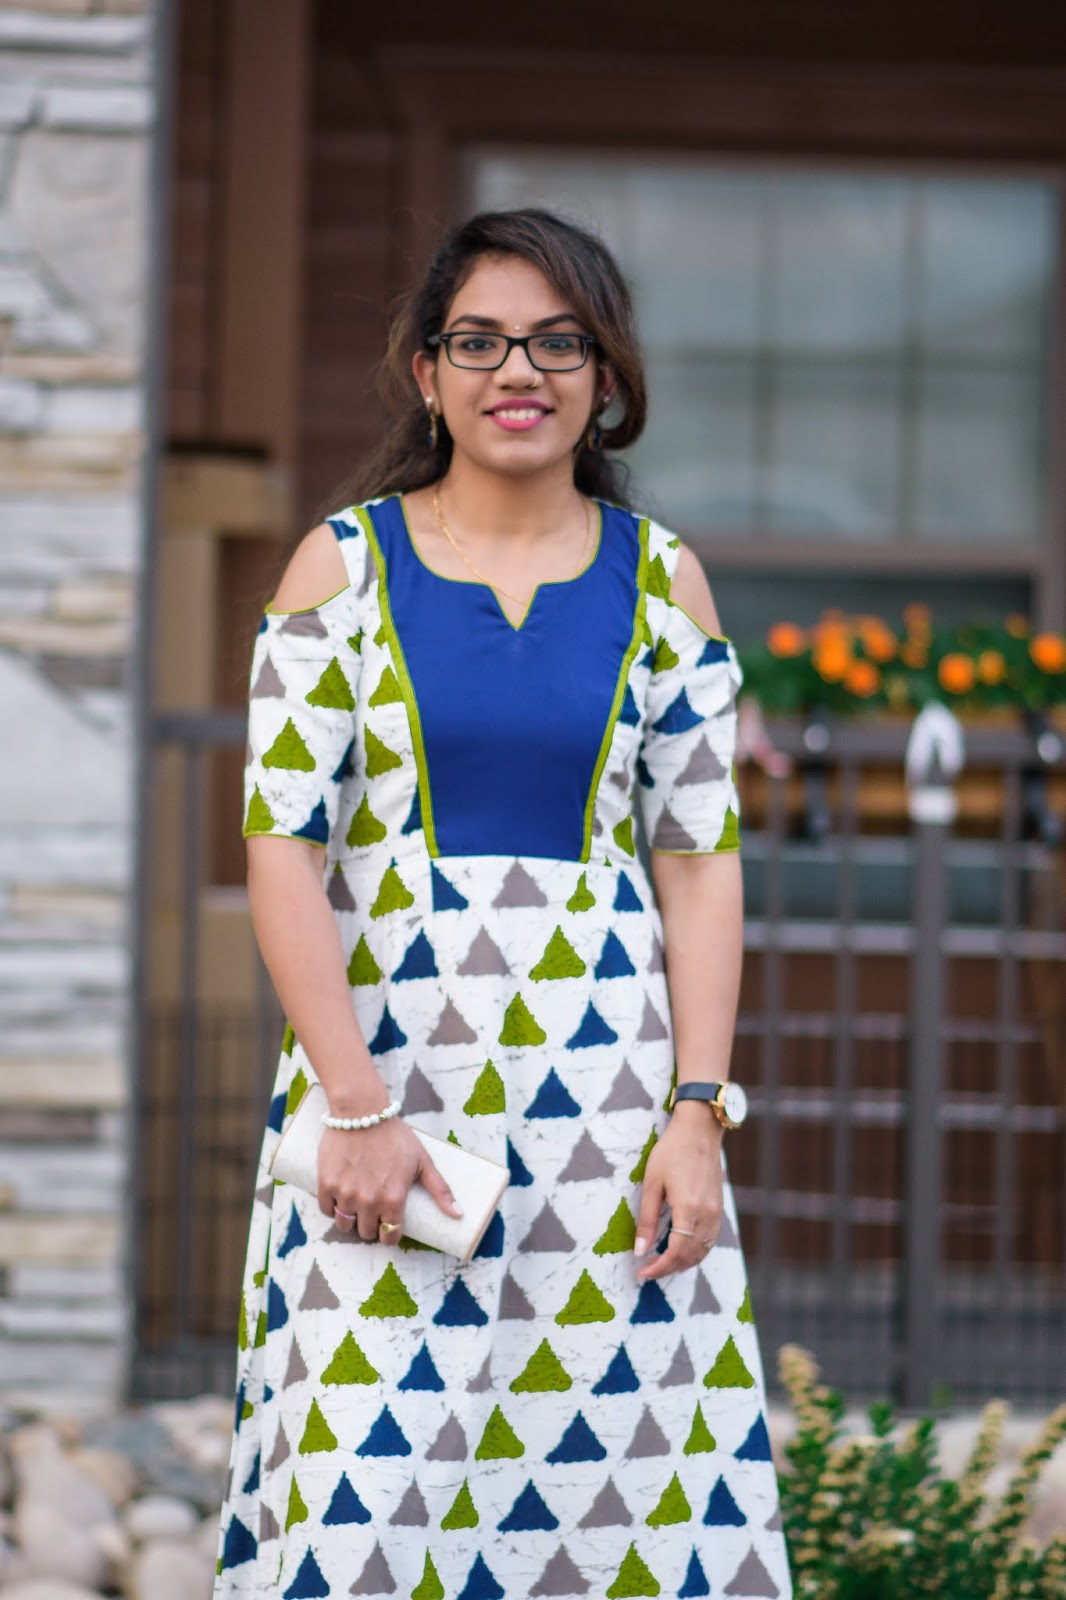 geometric-pattern-dress